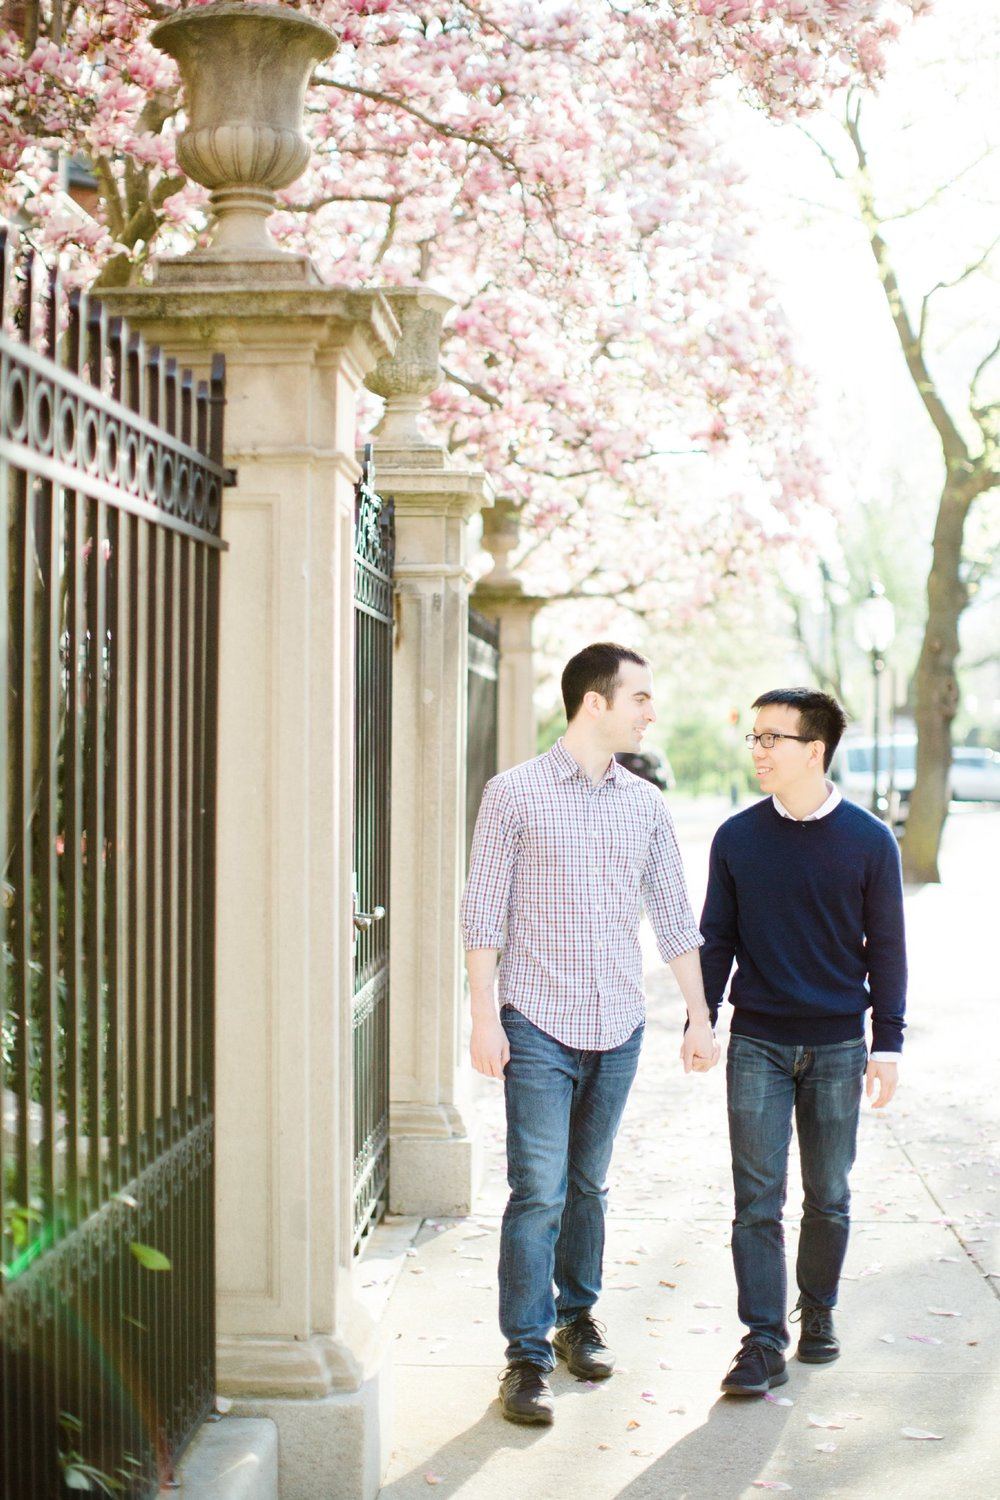 boston_spring_engagement_session_deborah_zoe_photography_00007.JPG